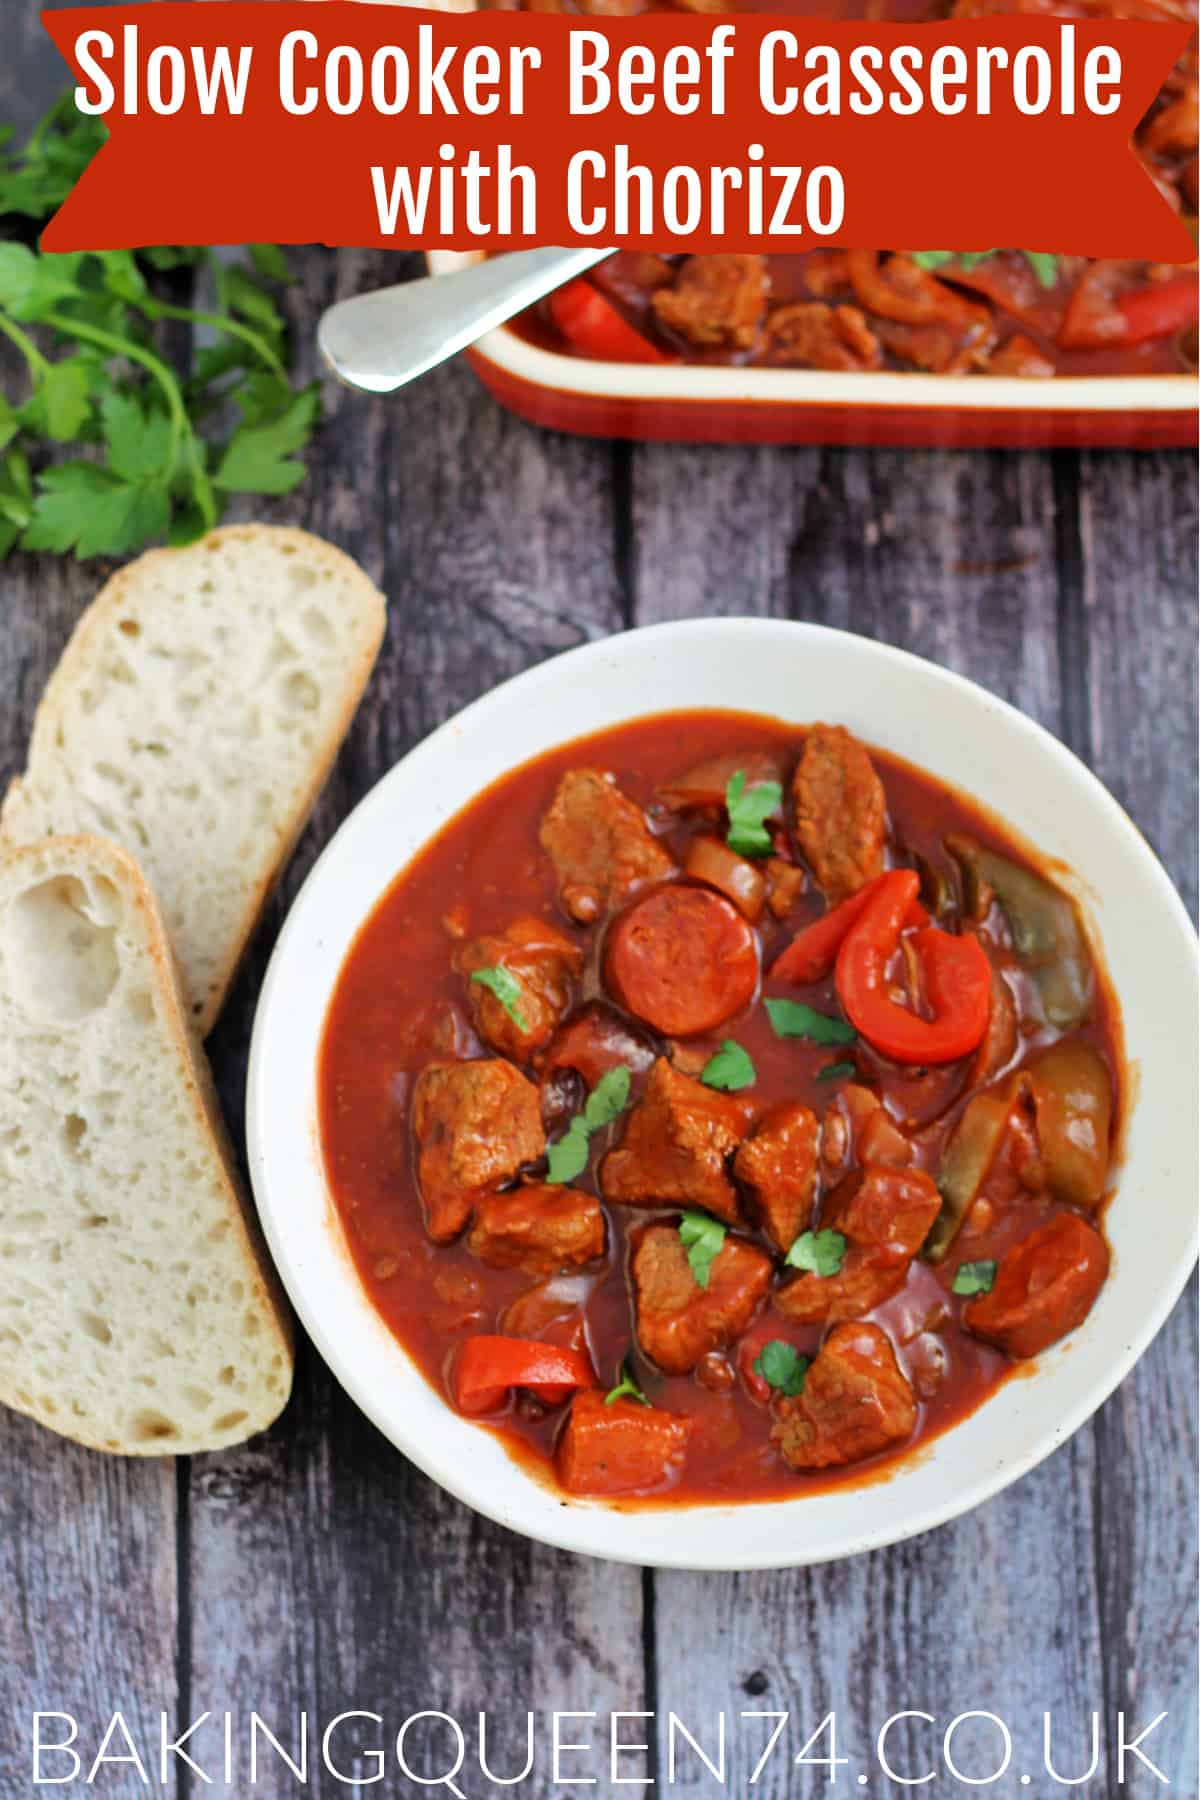 Bowl of beef casserole served with crusty bread on the side, with herbs and serving dish behind, with text overlay (slow cooker beef casserole with chorizo).